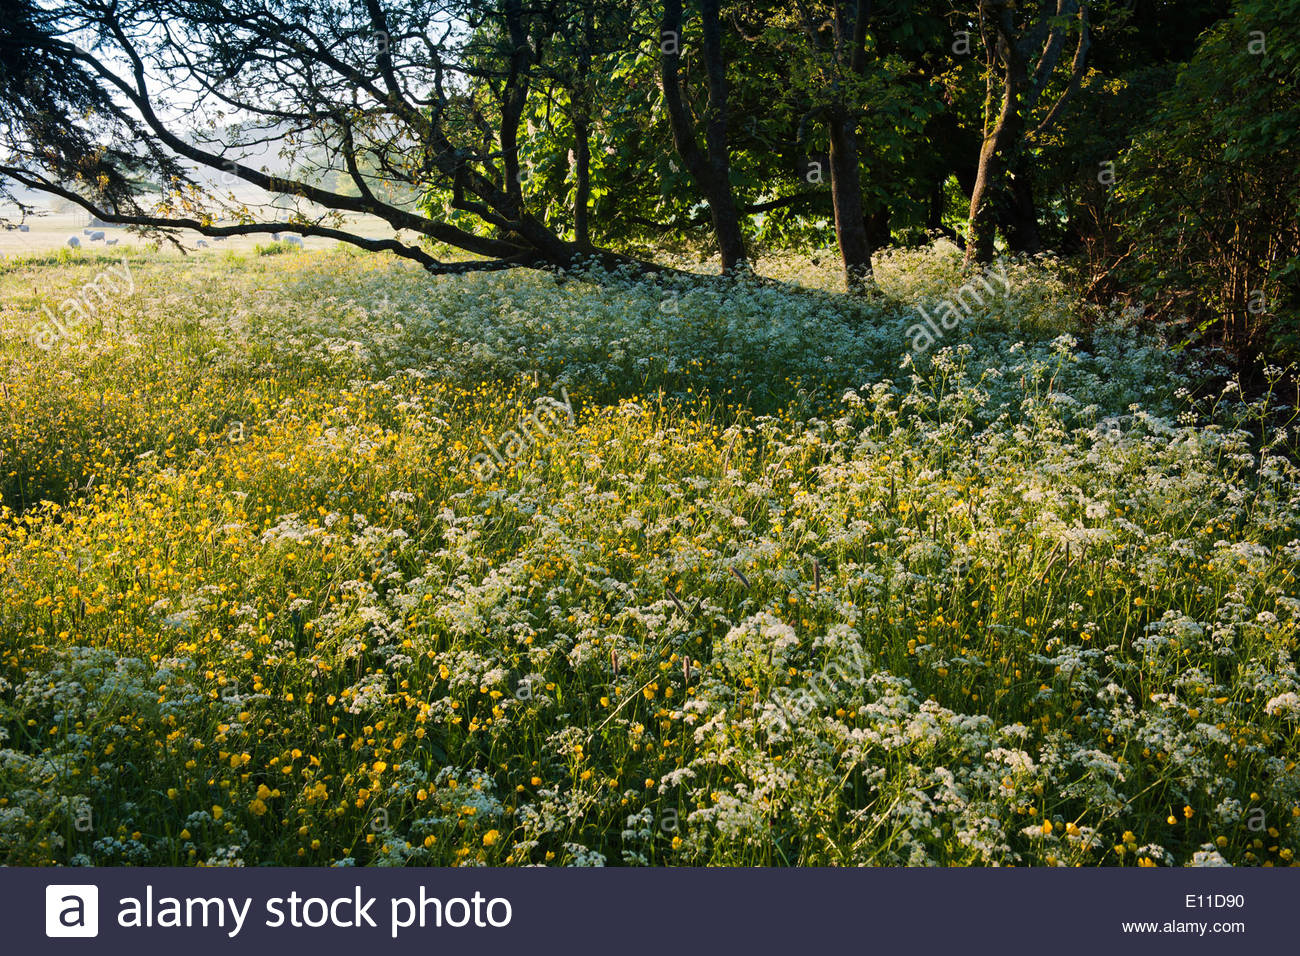 wildflower areas borders Cow Parsley Anthriscus sylvestris Creeping Buttercups Ranunculus repens early summer flowers May West - Stock Image